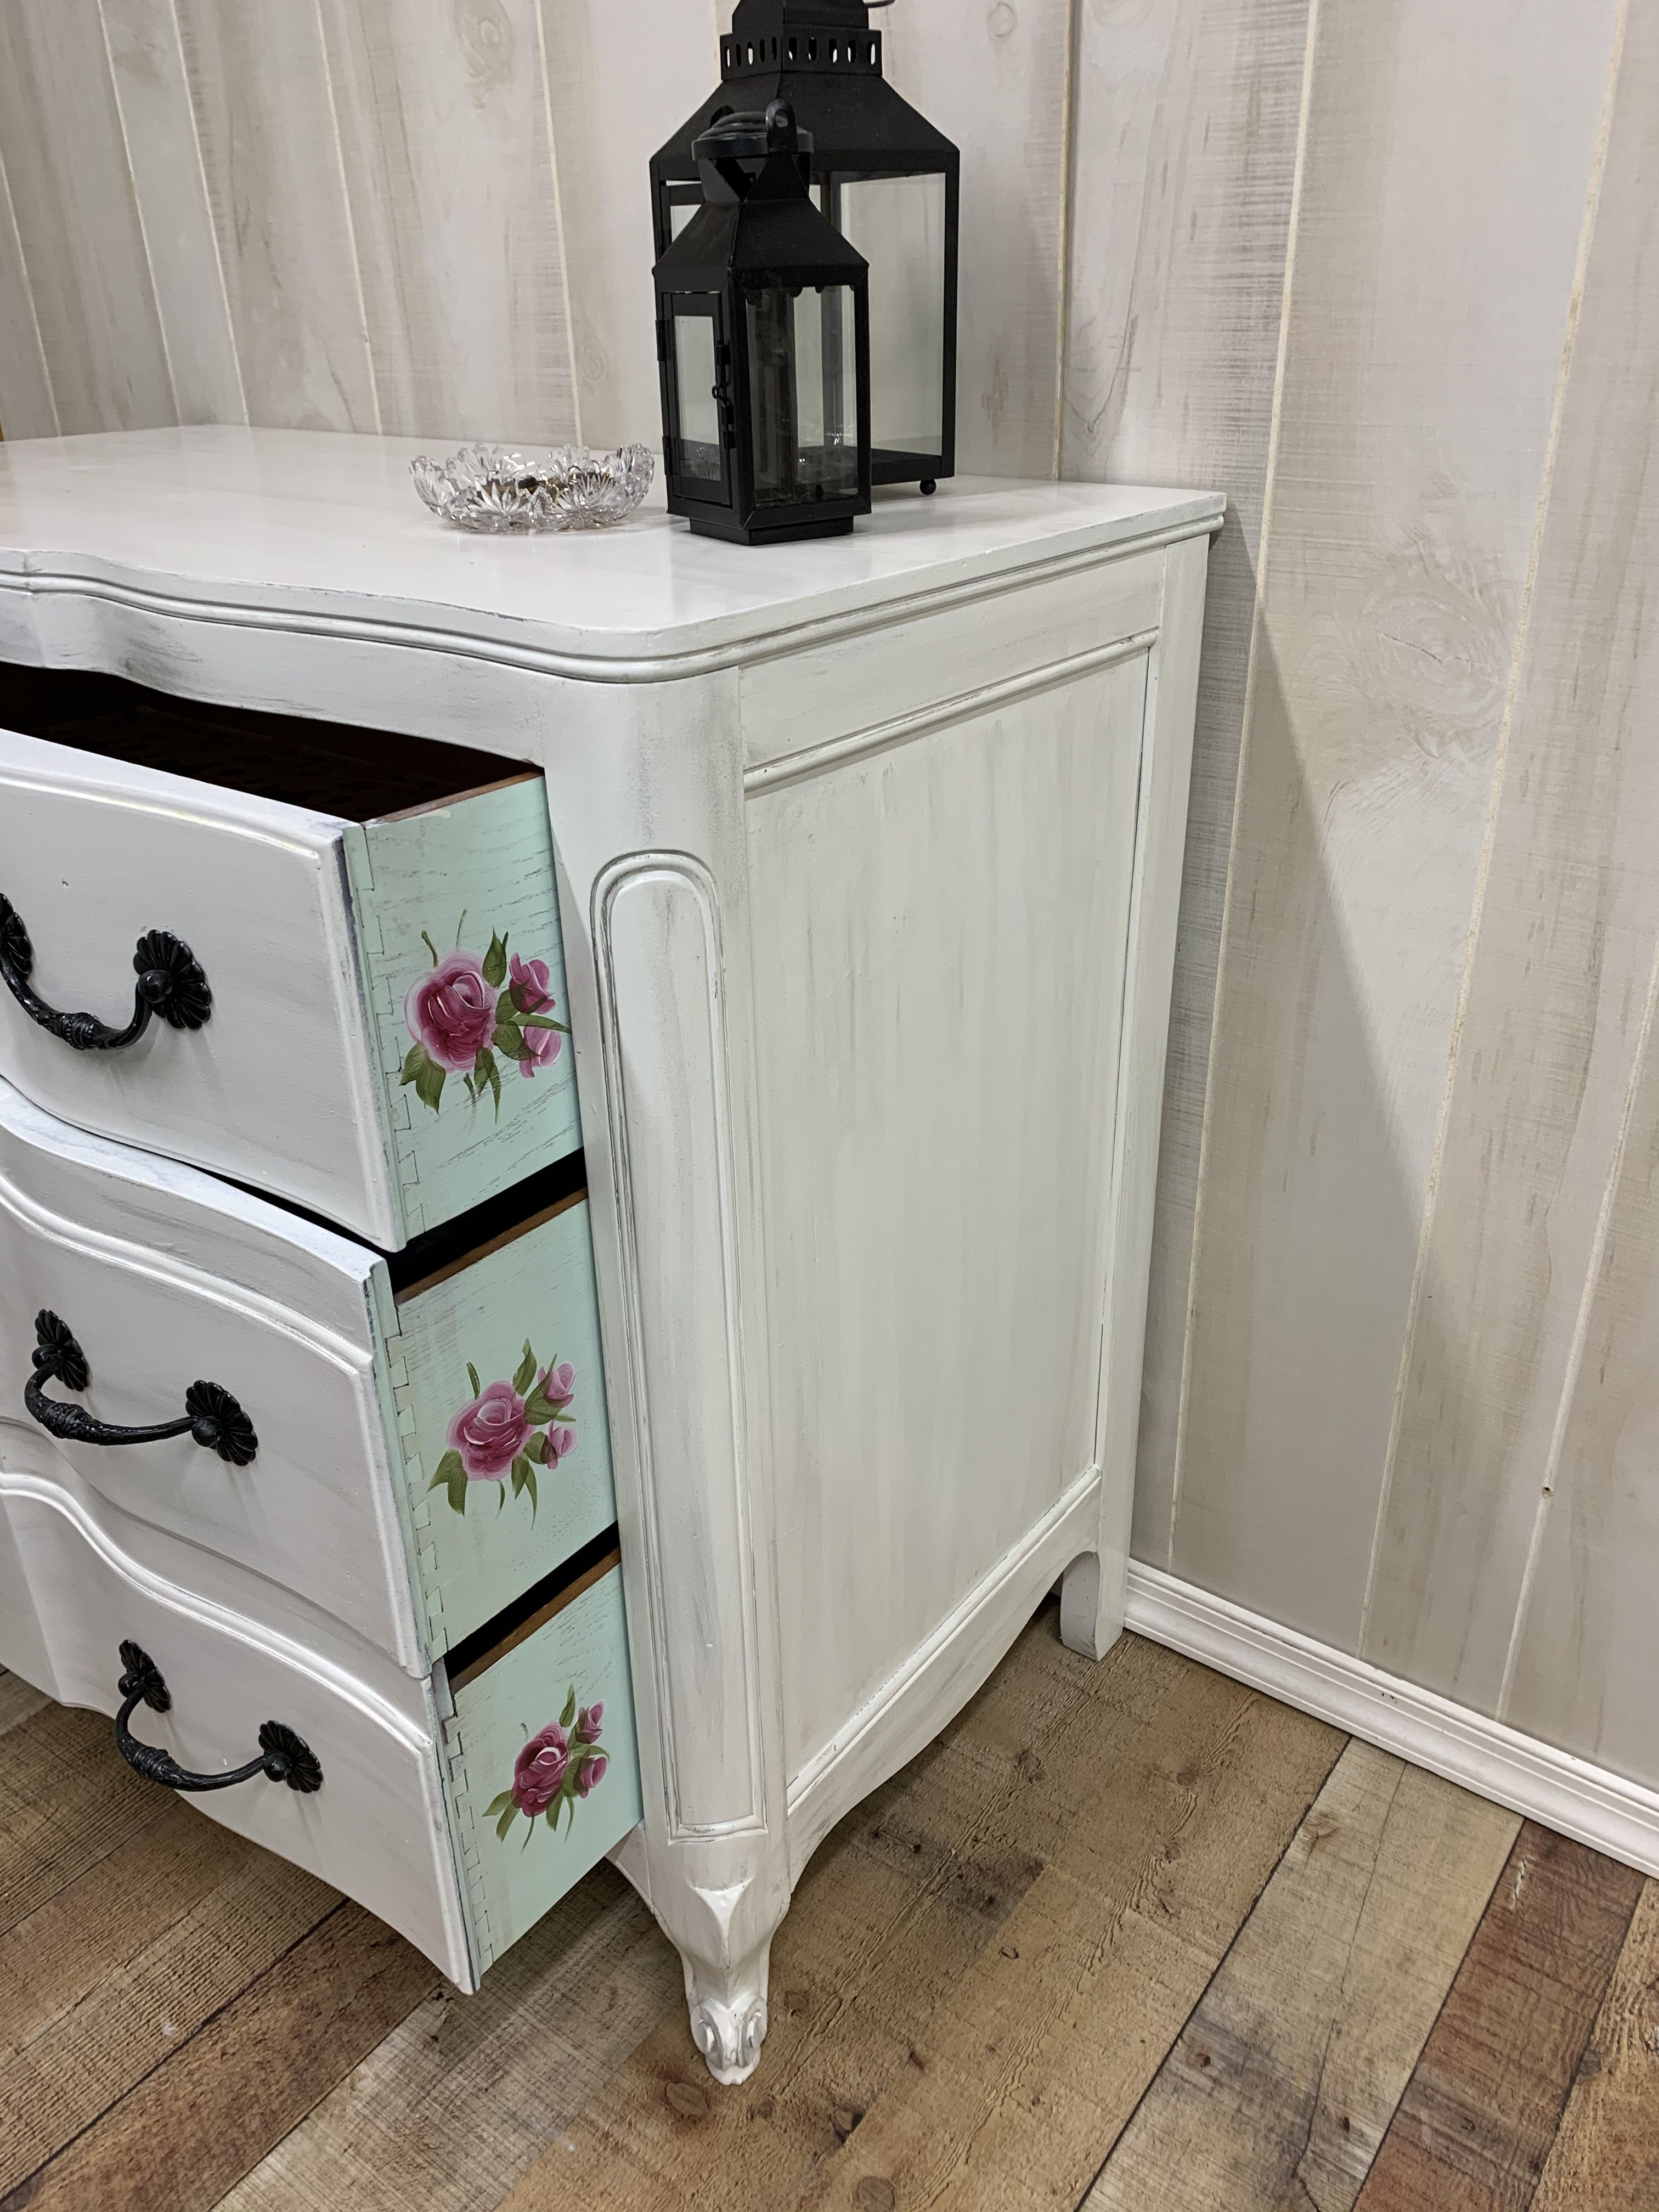 Vintage French Provincial With Handpainted Flowers Painted Dresser Vintage Furniture Furniture Makeover